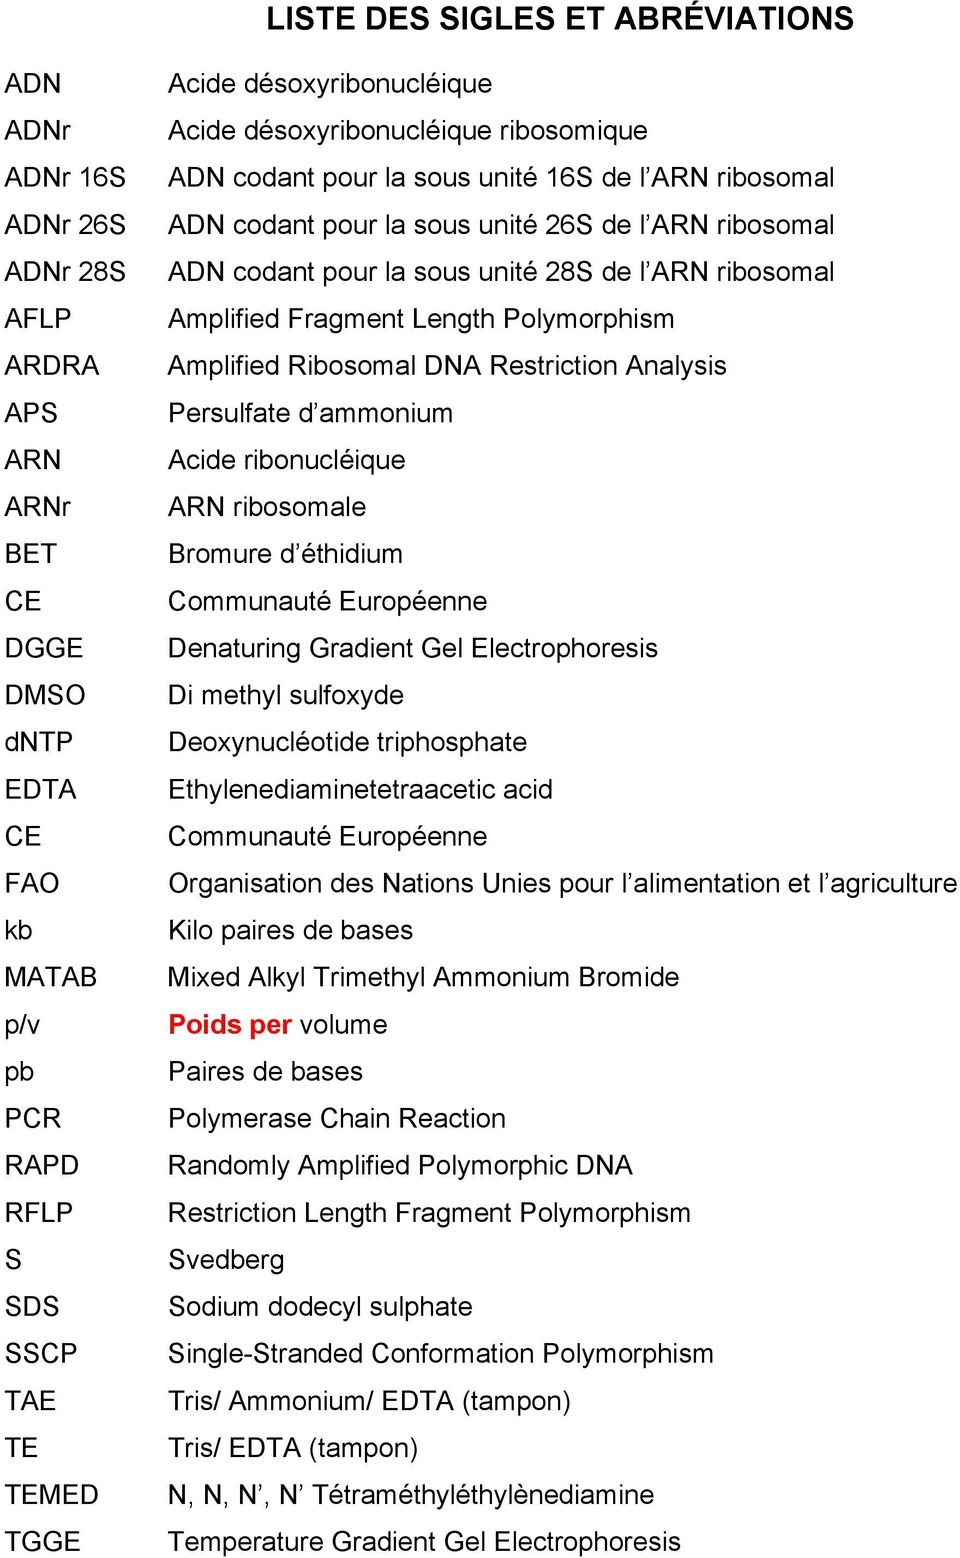 de l ARN ribosomal Amplified Fragment Length Polymorphism Amplified Ribosomal DNA Restriction Analysis Persulfate d ammonium Acide ribonucléique ARN ribosomale Bromure d éthidium Communauté